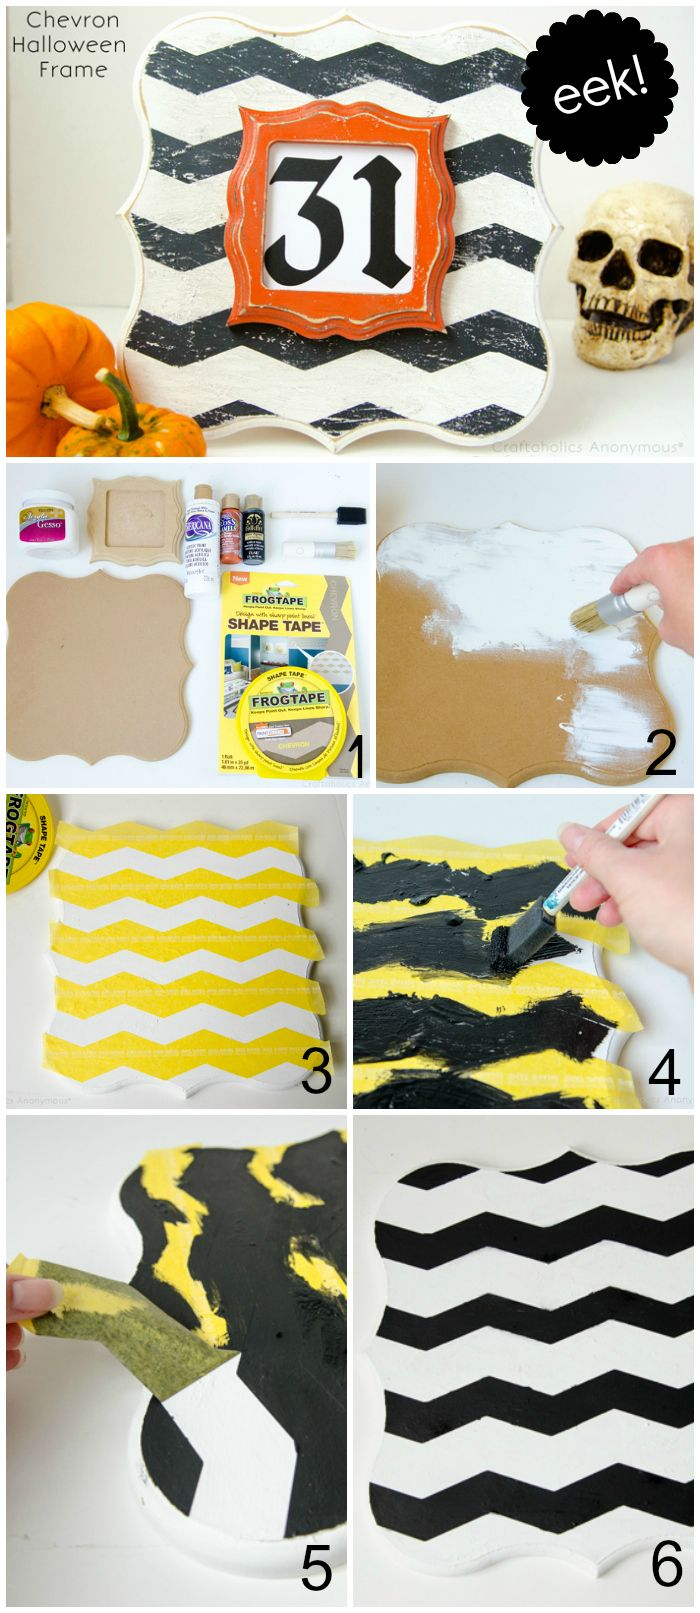 Craftaholics Anonymous® | Chevron Halloween Frame Tutorial, would be cute in Fall or Christmas colors too!